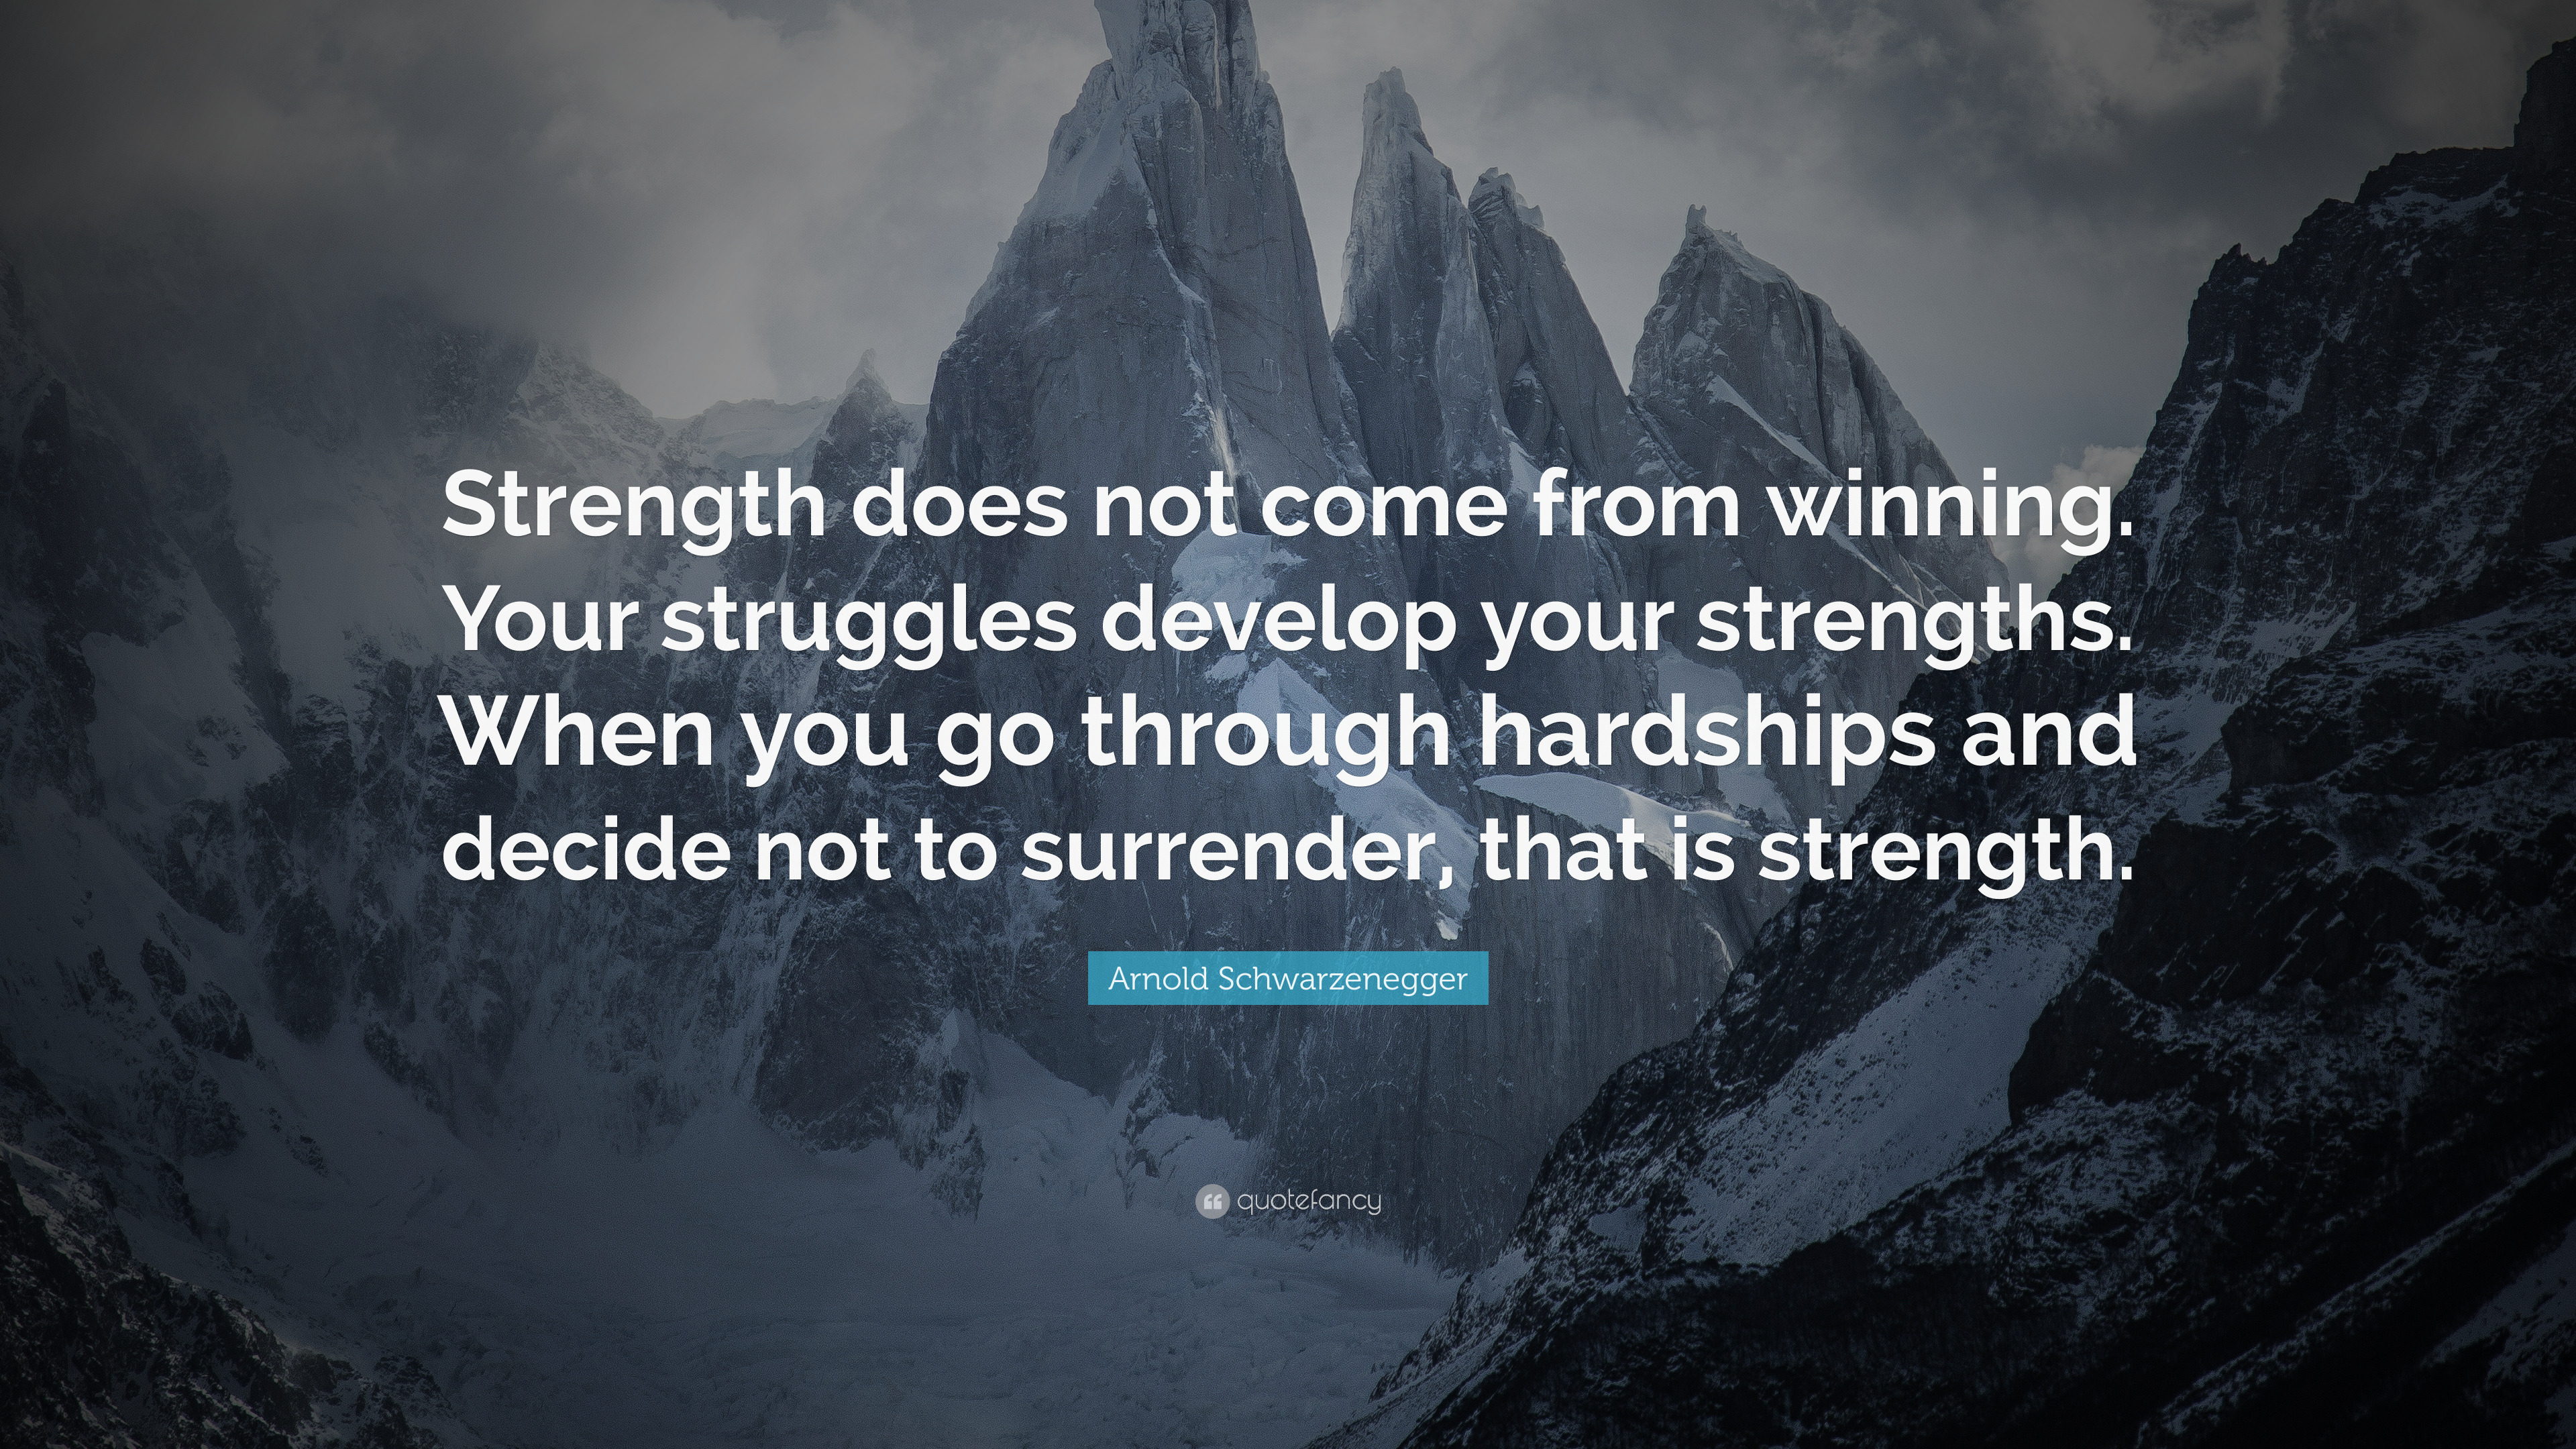 Quotes On Strength | Quotes About Strength 23 Wallpapers Quotefancy